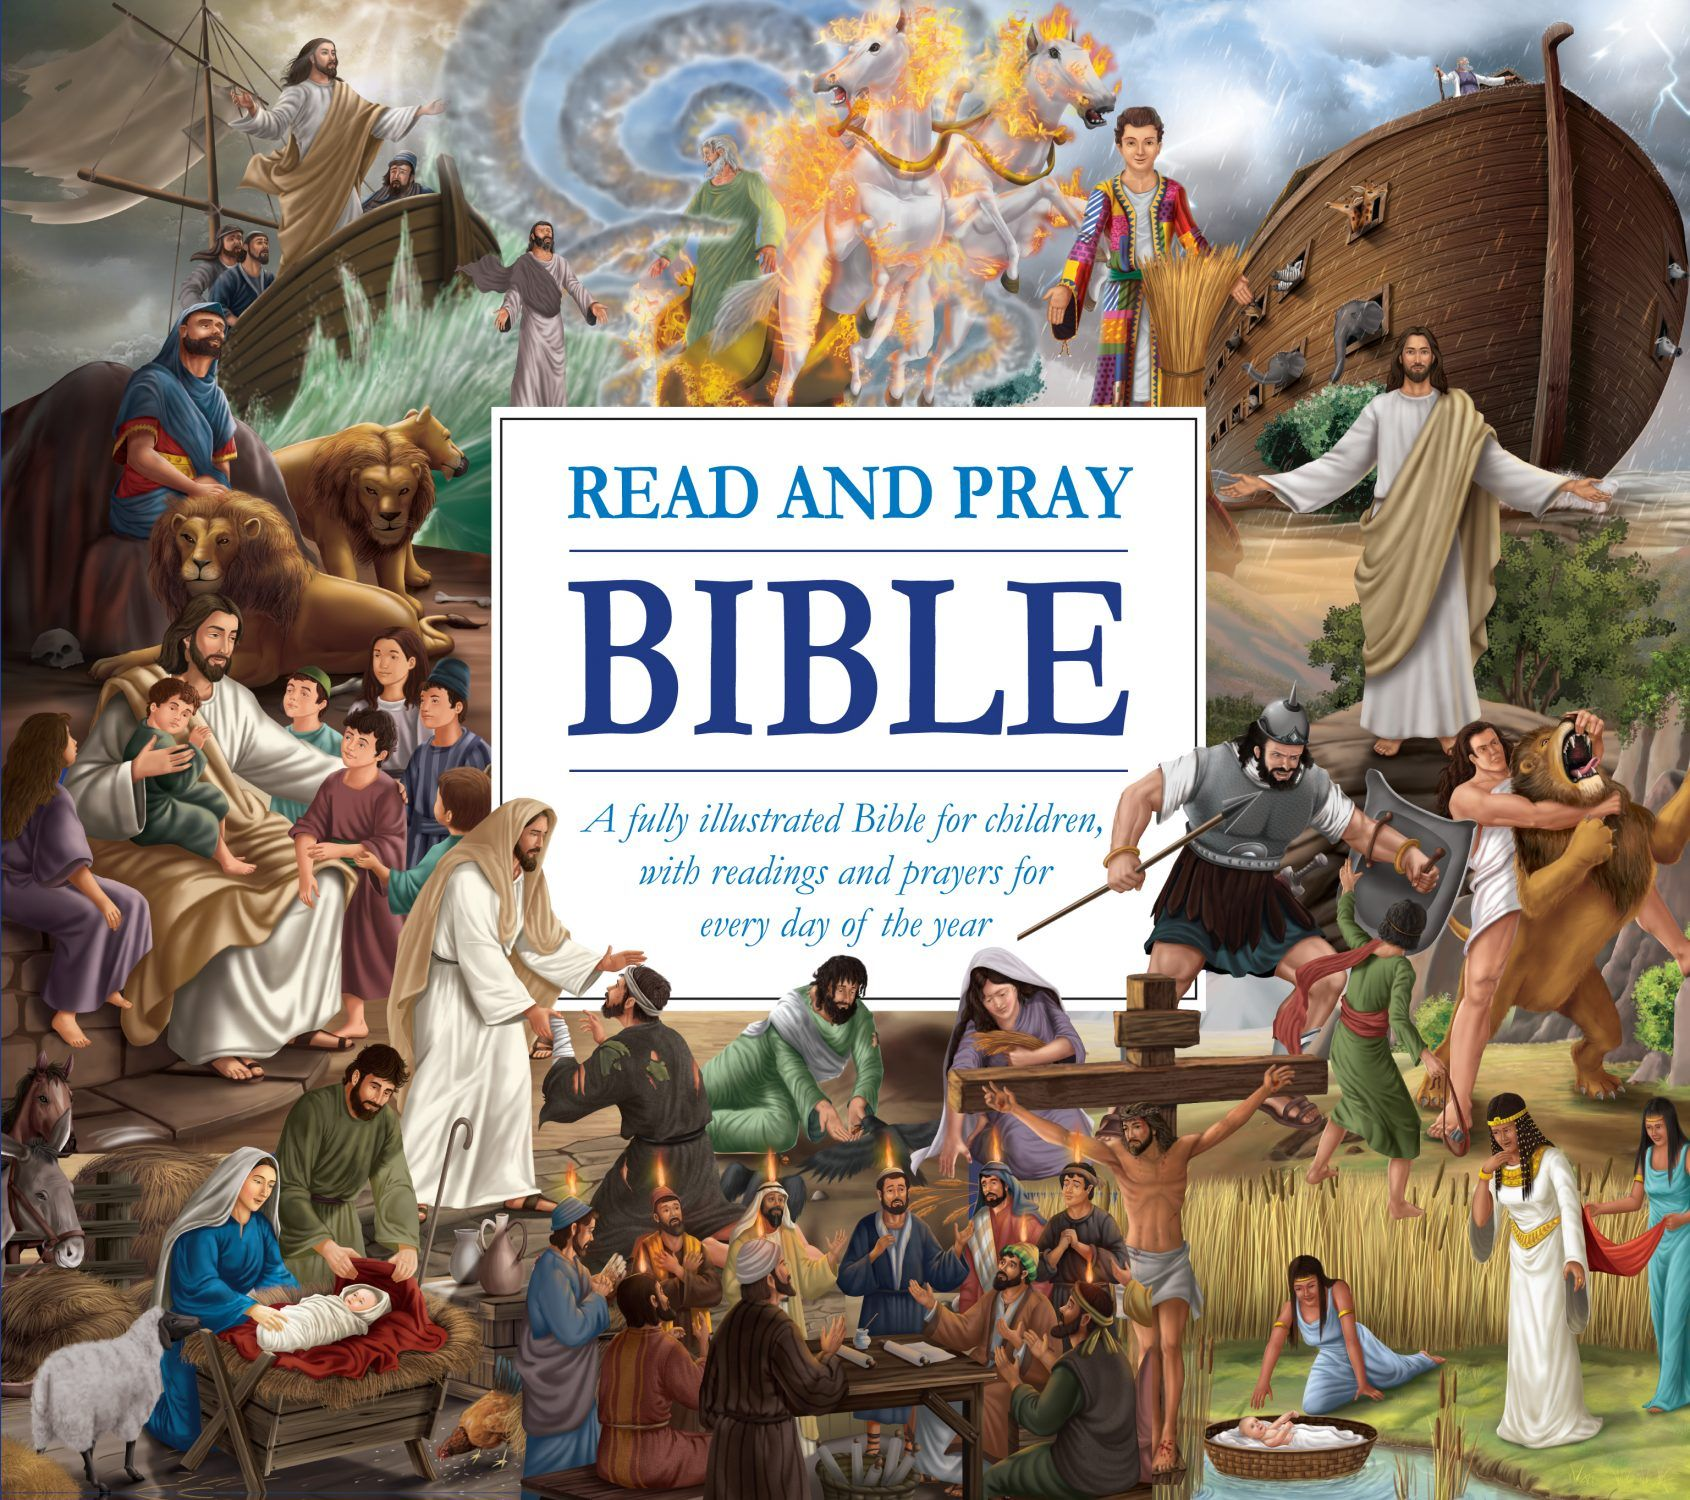 Read and Pray Bible by North Parade